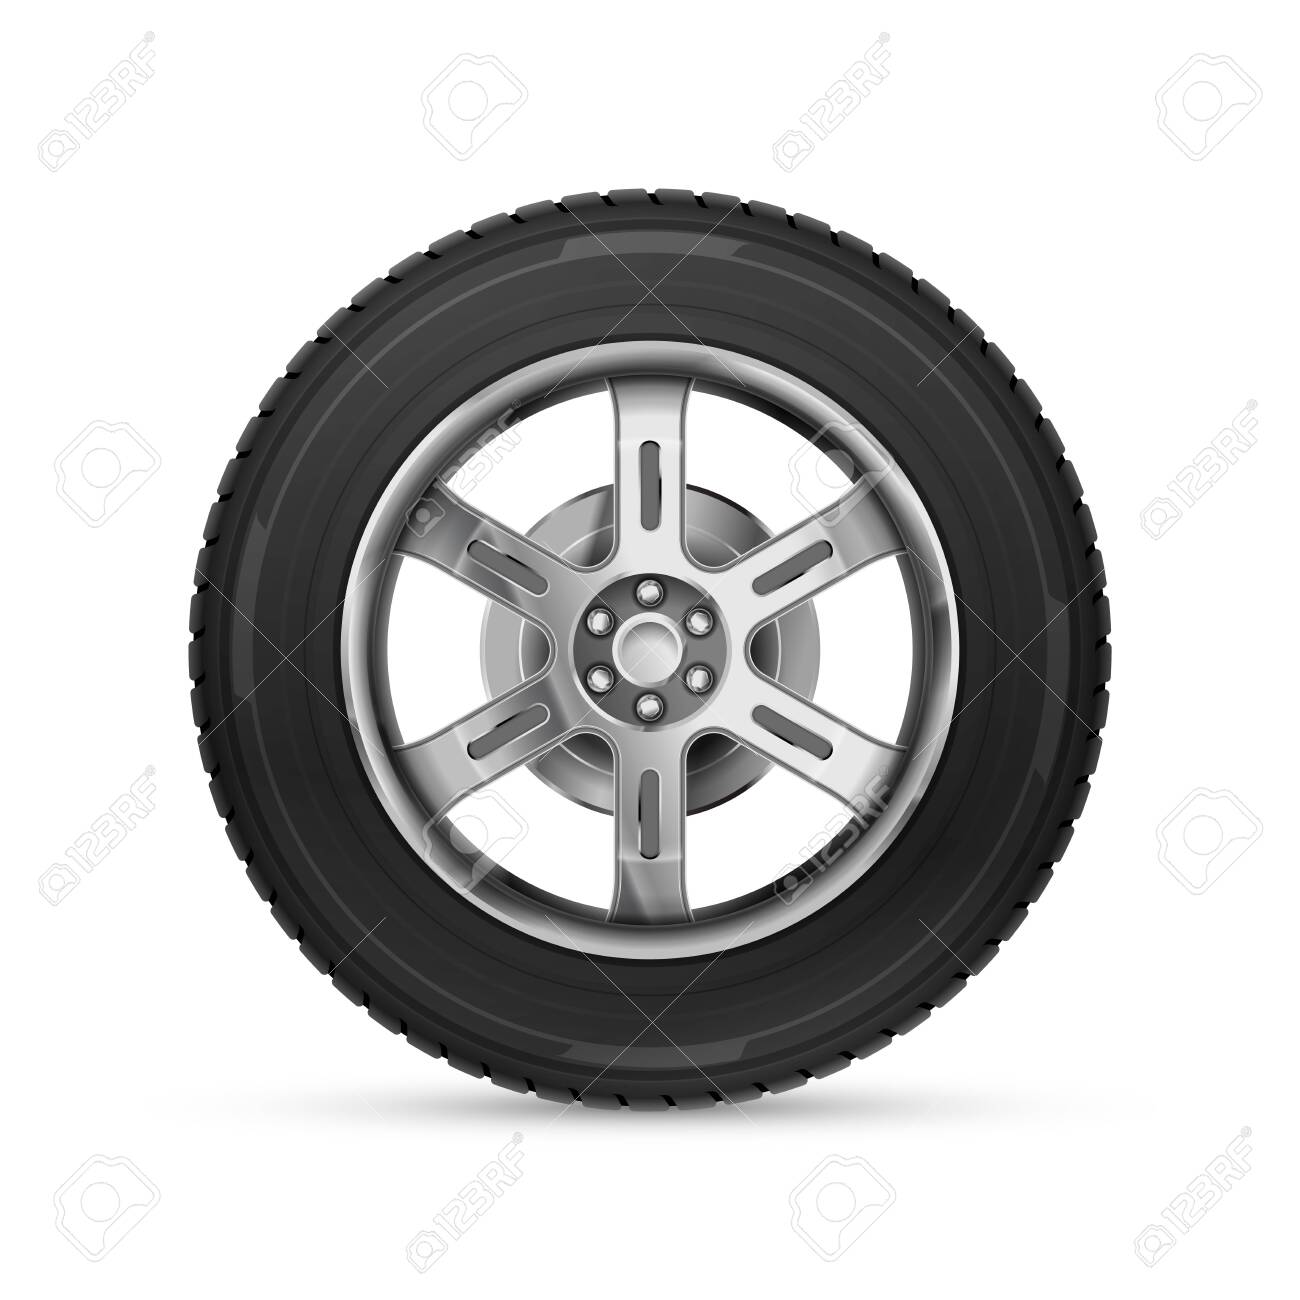 Detailed realistic car wheel isolated on white - 141112165